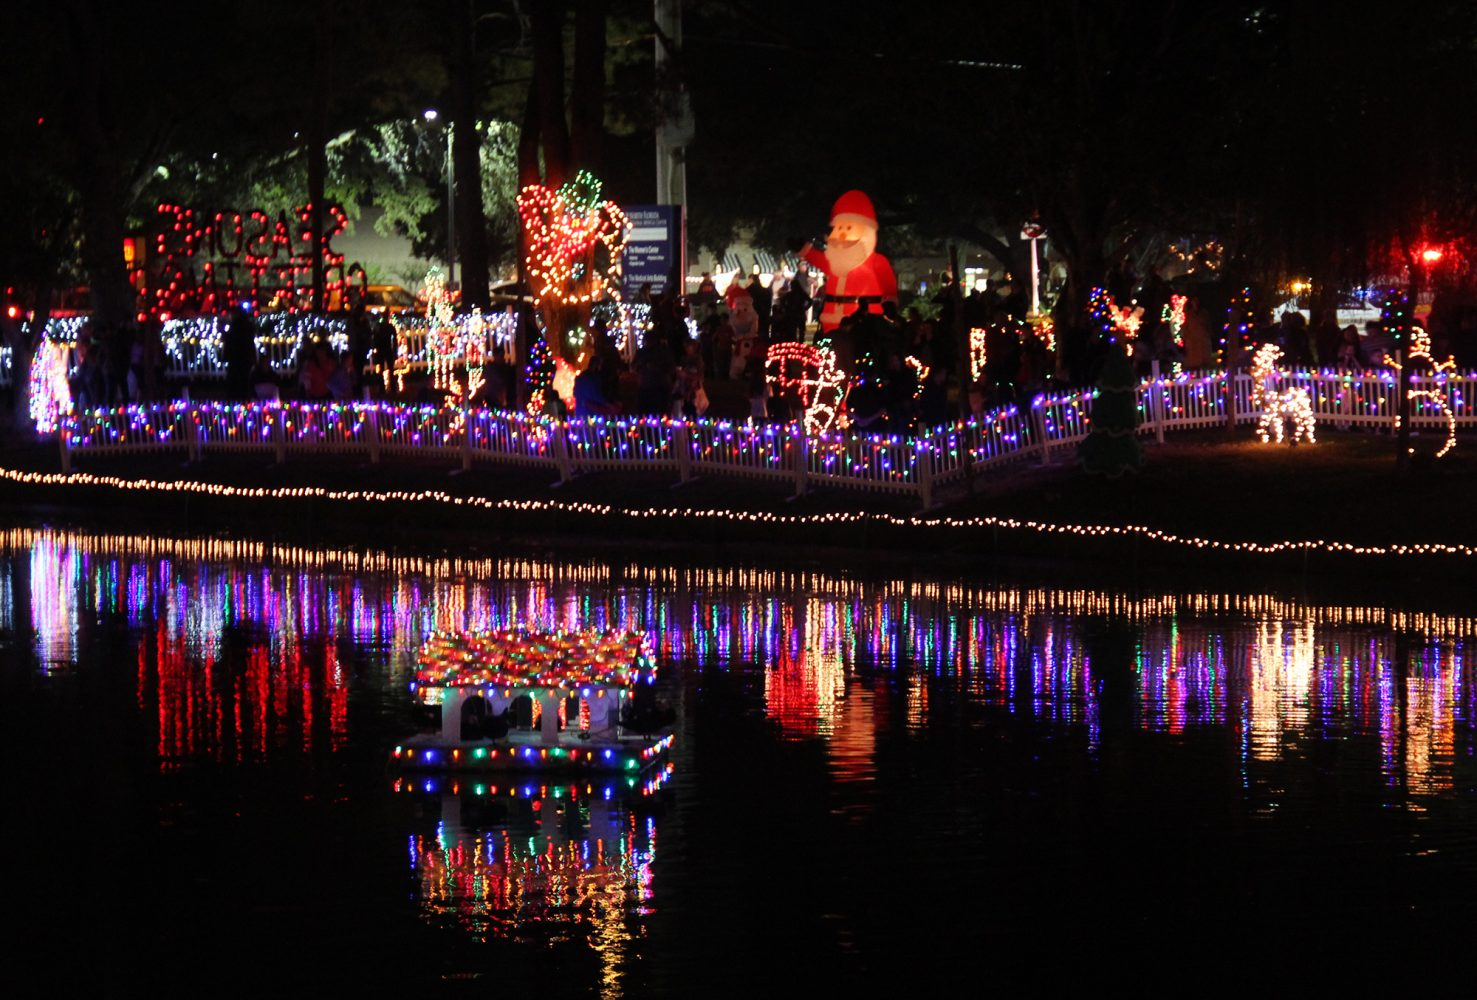 In photos gainesville starts christmas season with lights